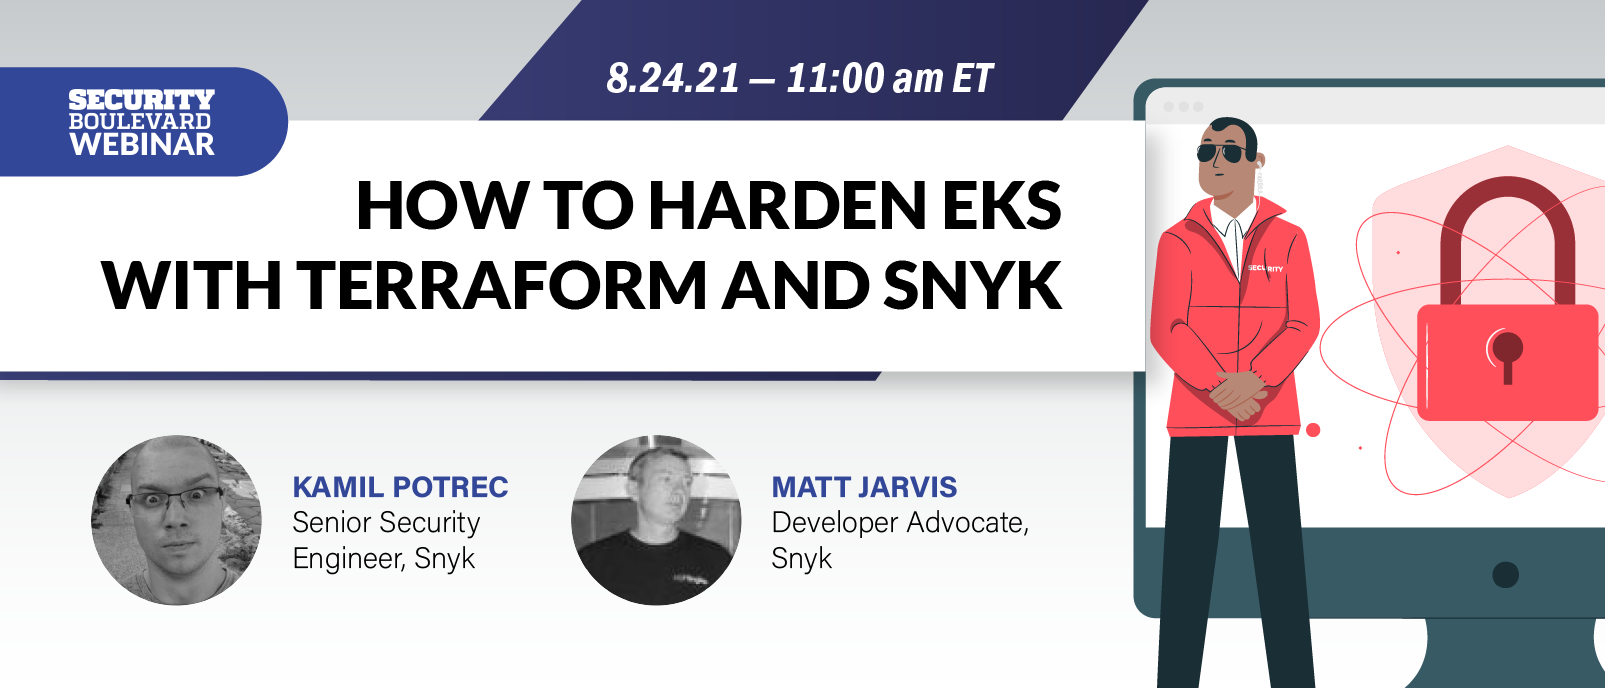 How to Harden EKS With Terraform and Snyk